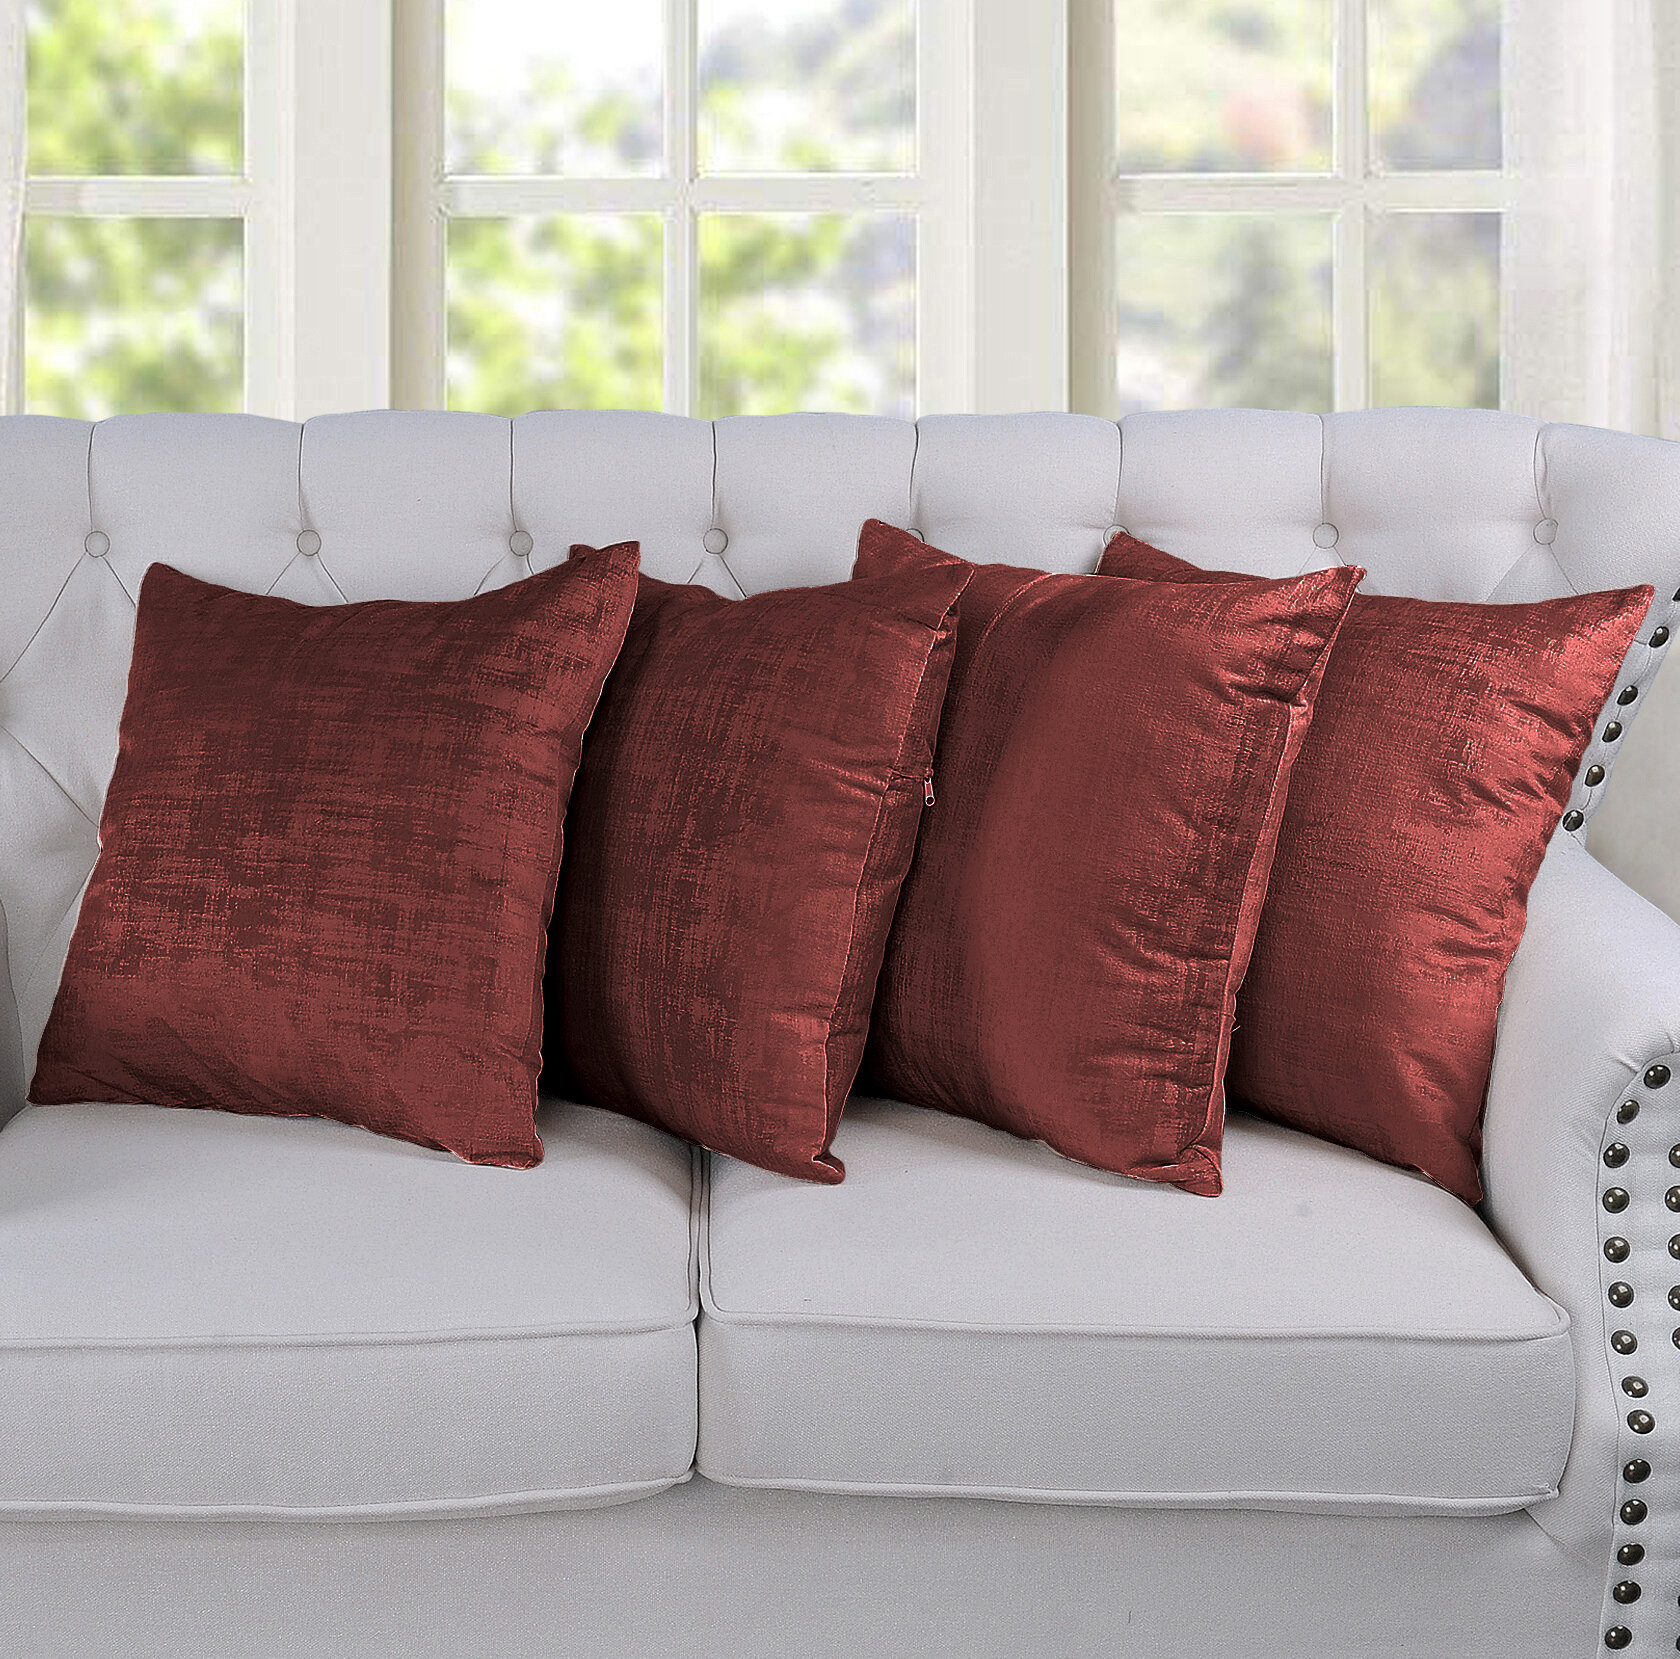 Wayfair Red Throw Pillows You Ll Love In 2021